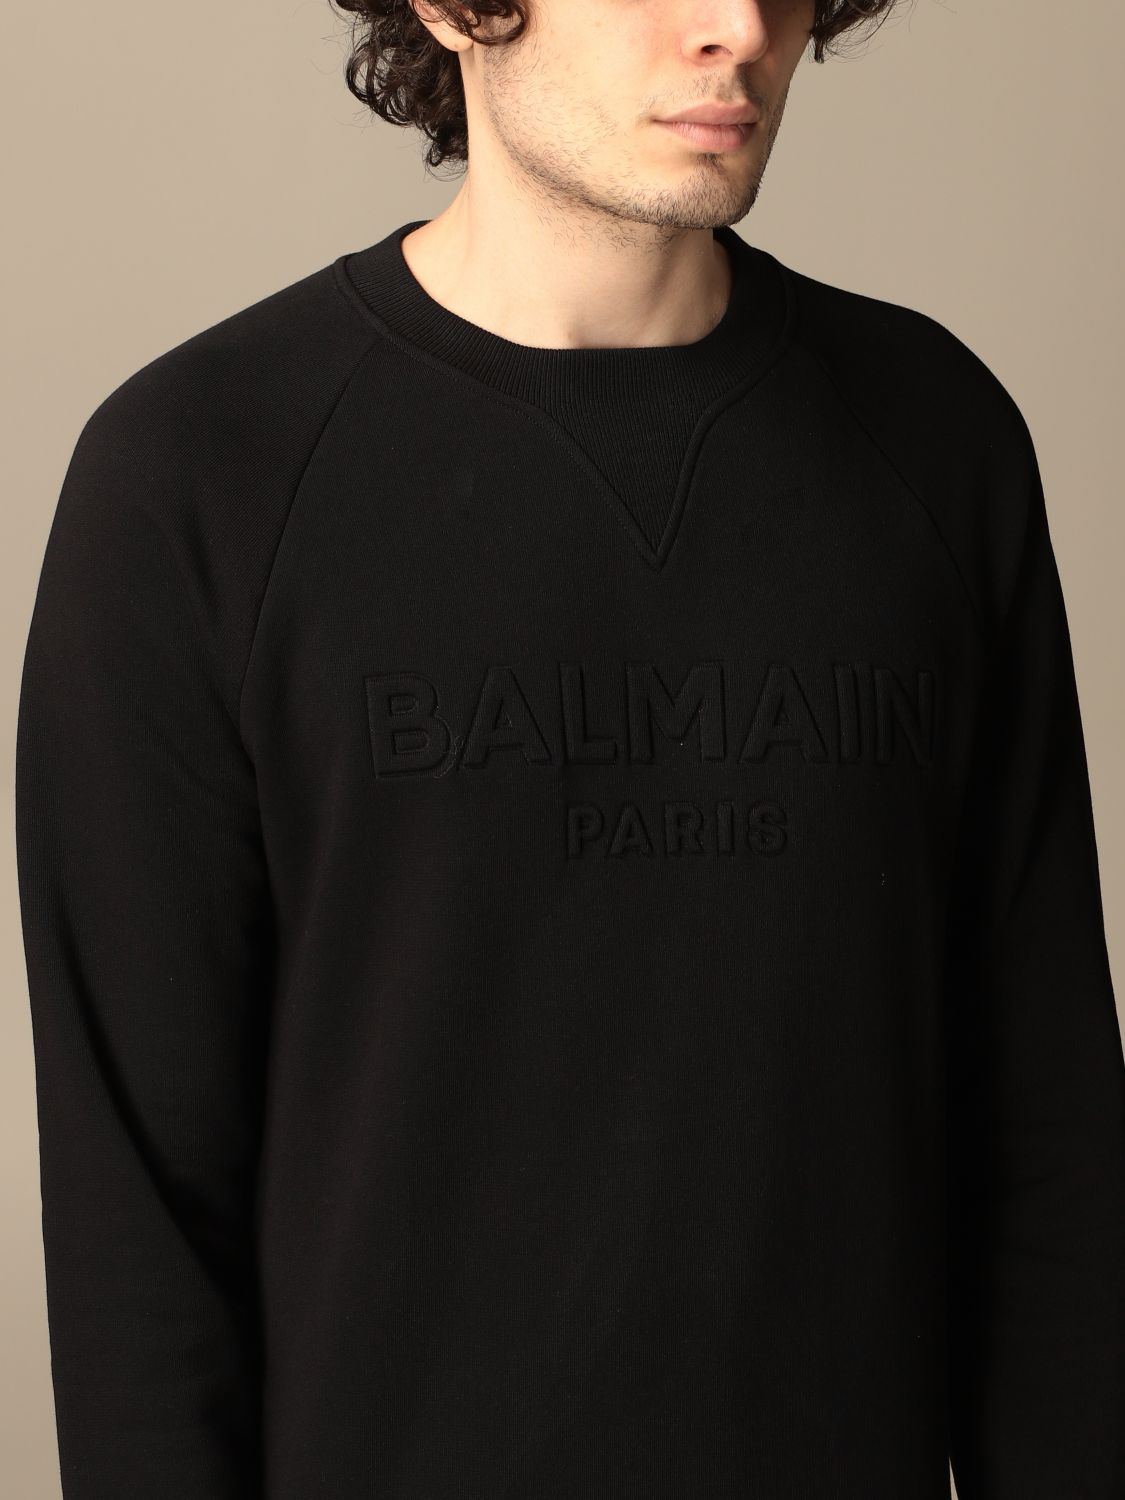 Sweatshirt Balmain: Balmain cotton sweatshirt with logo black 5